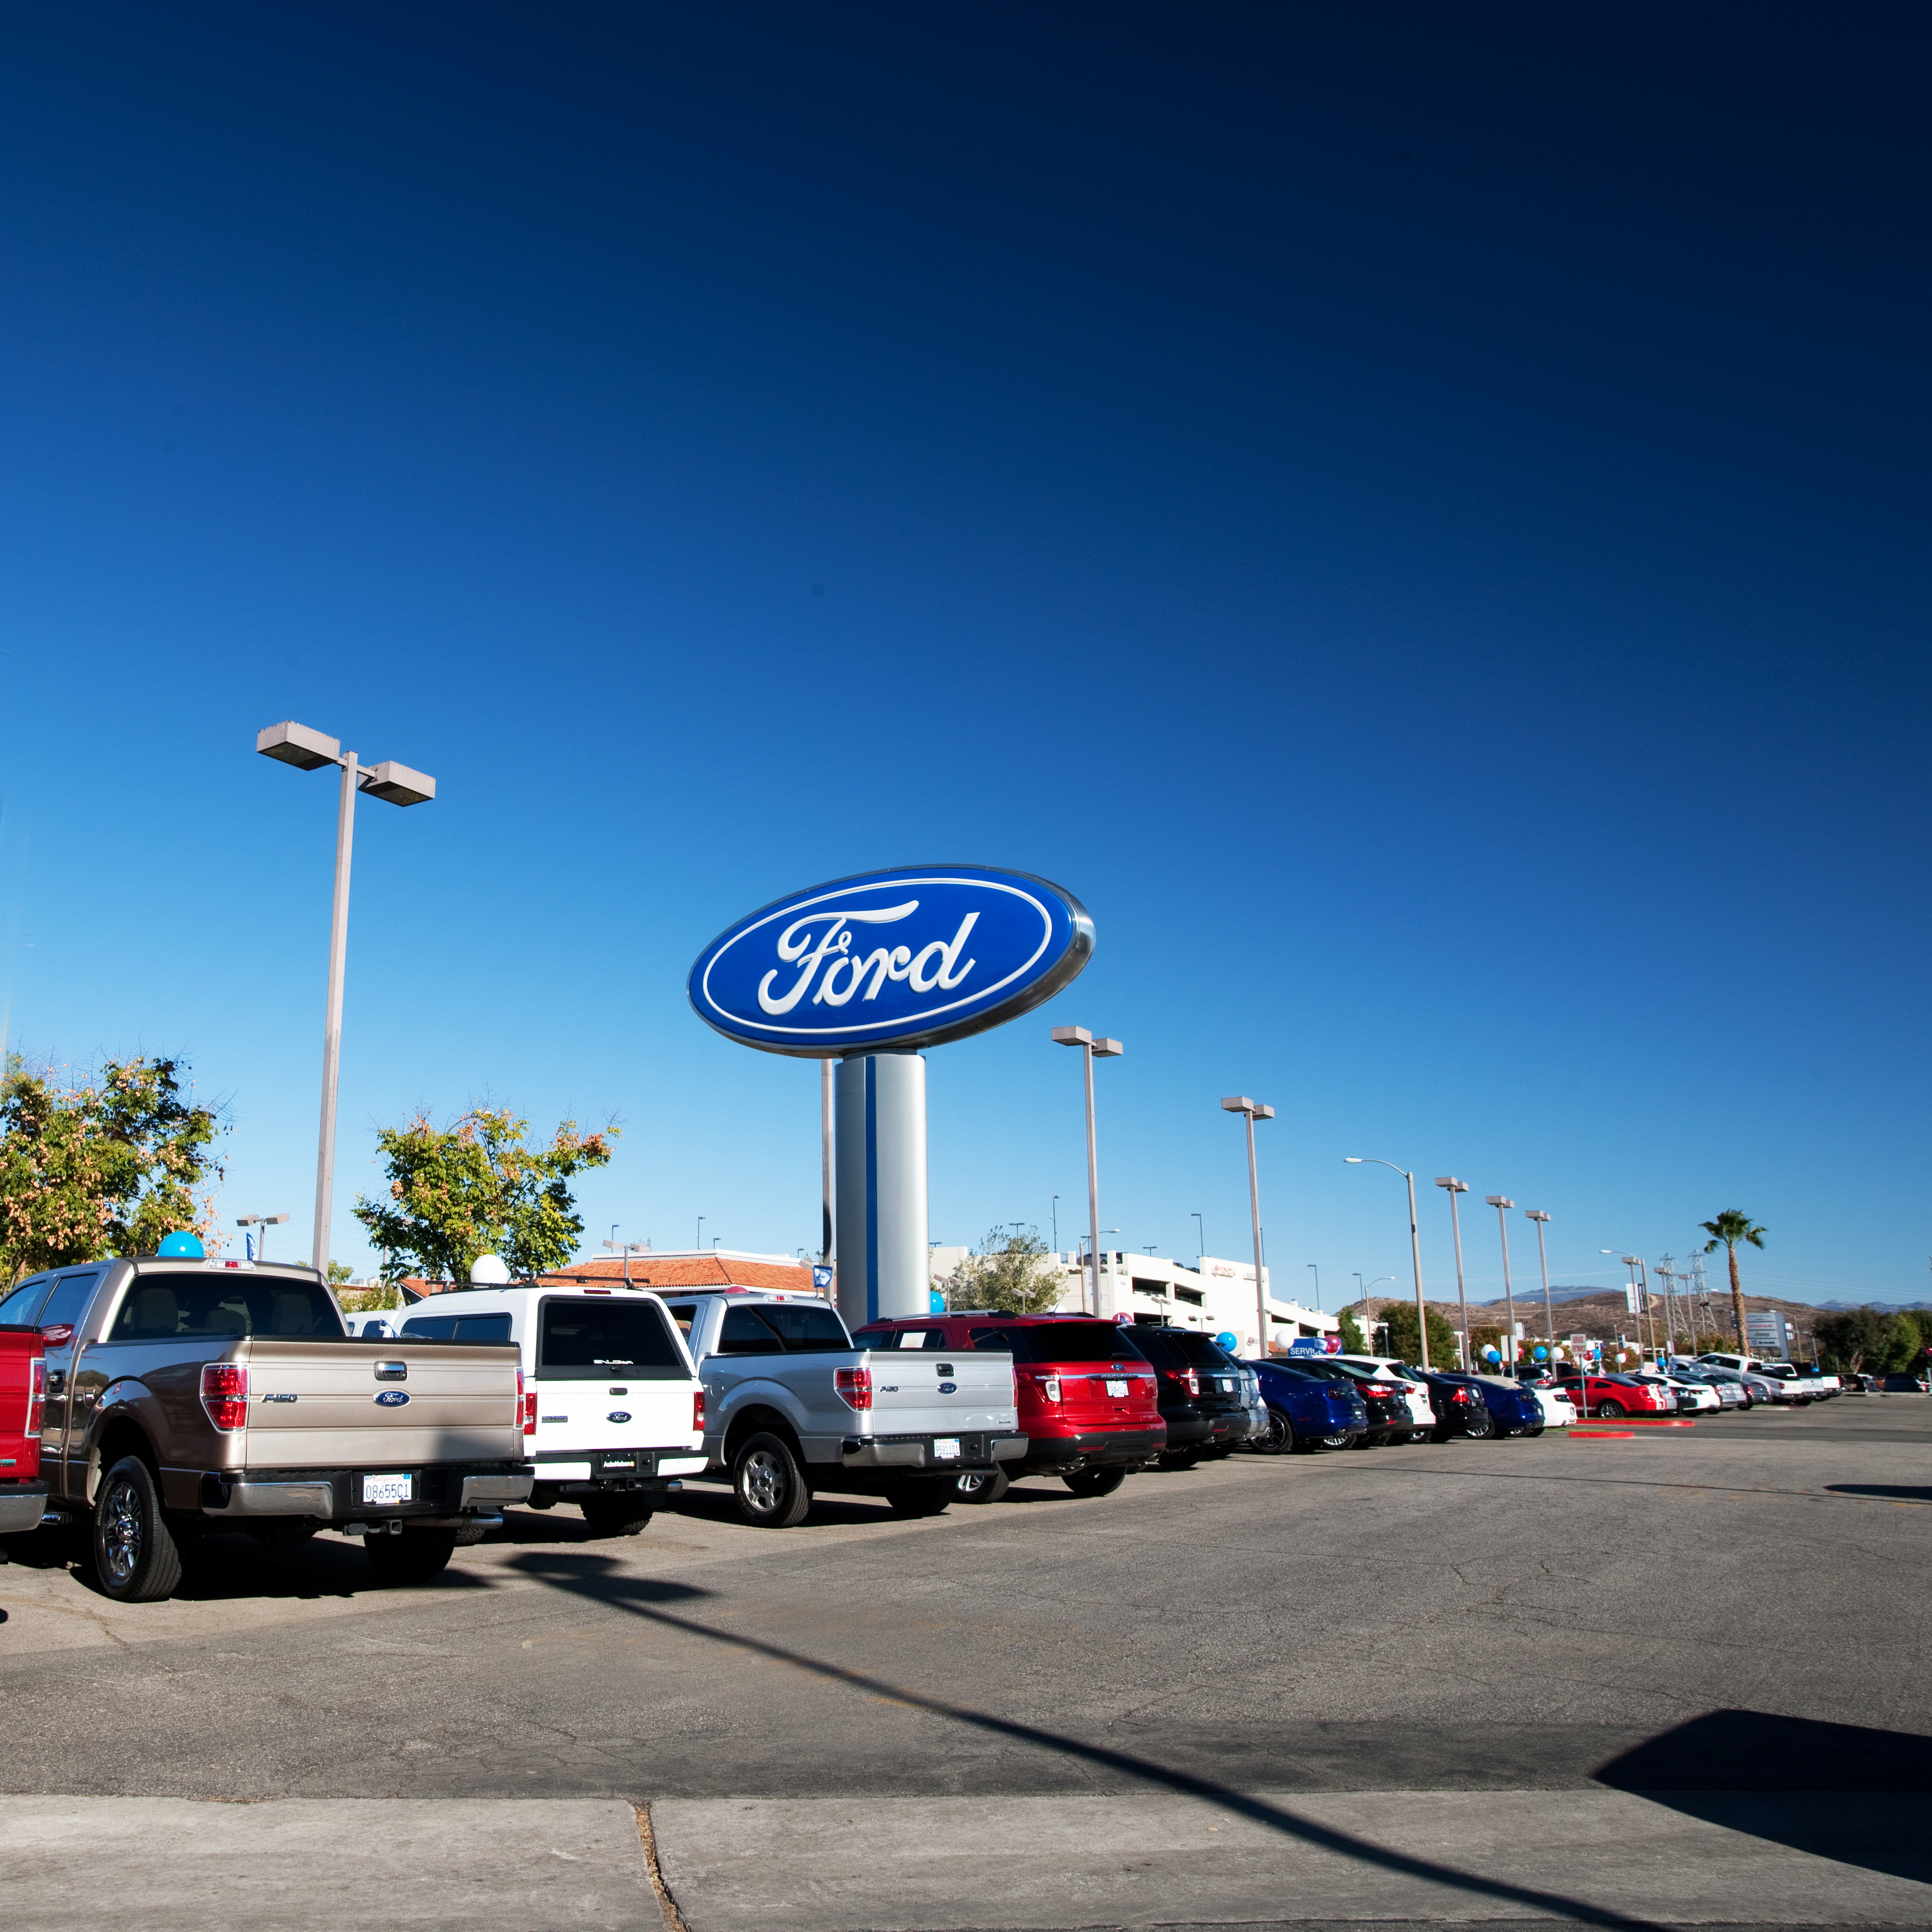 autonation ford valencia in valencia ca whitepages. Cars Review. Best American Auto & Cars Review